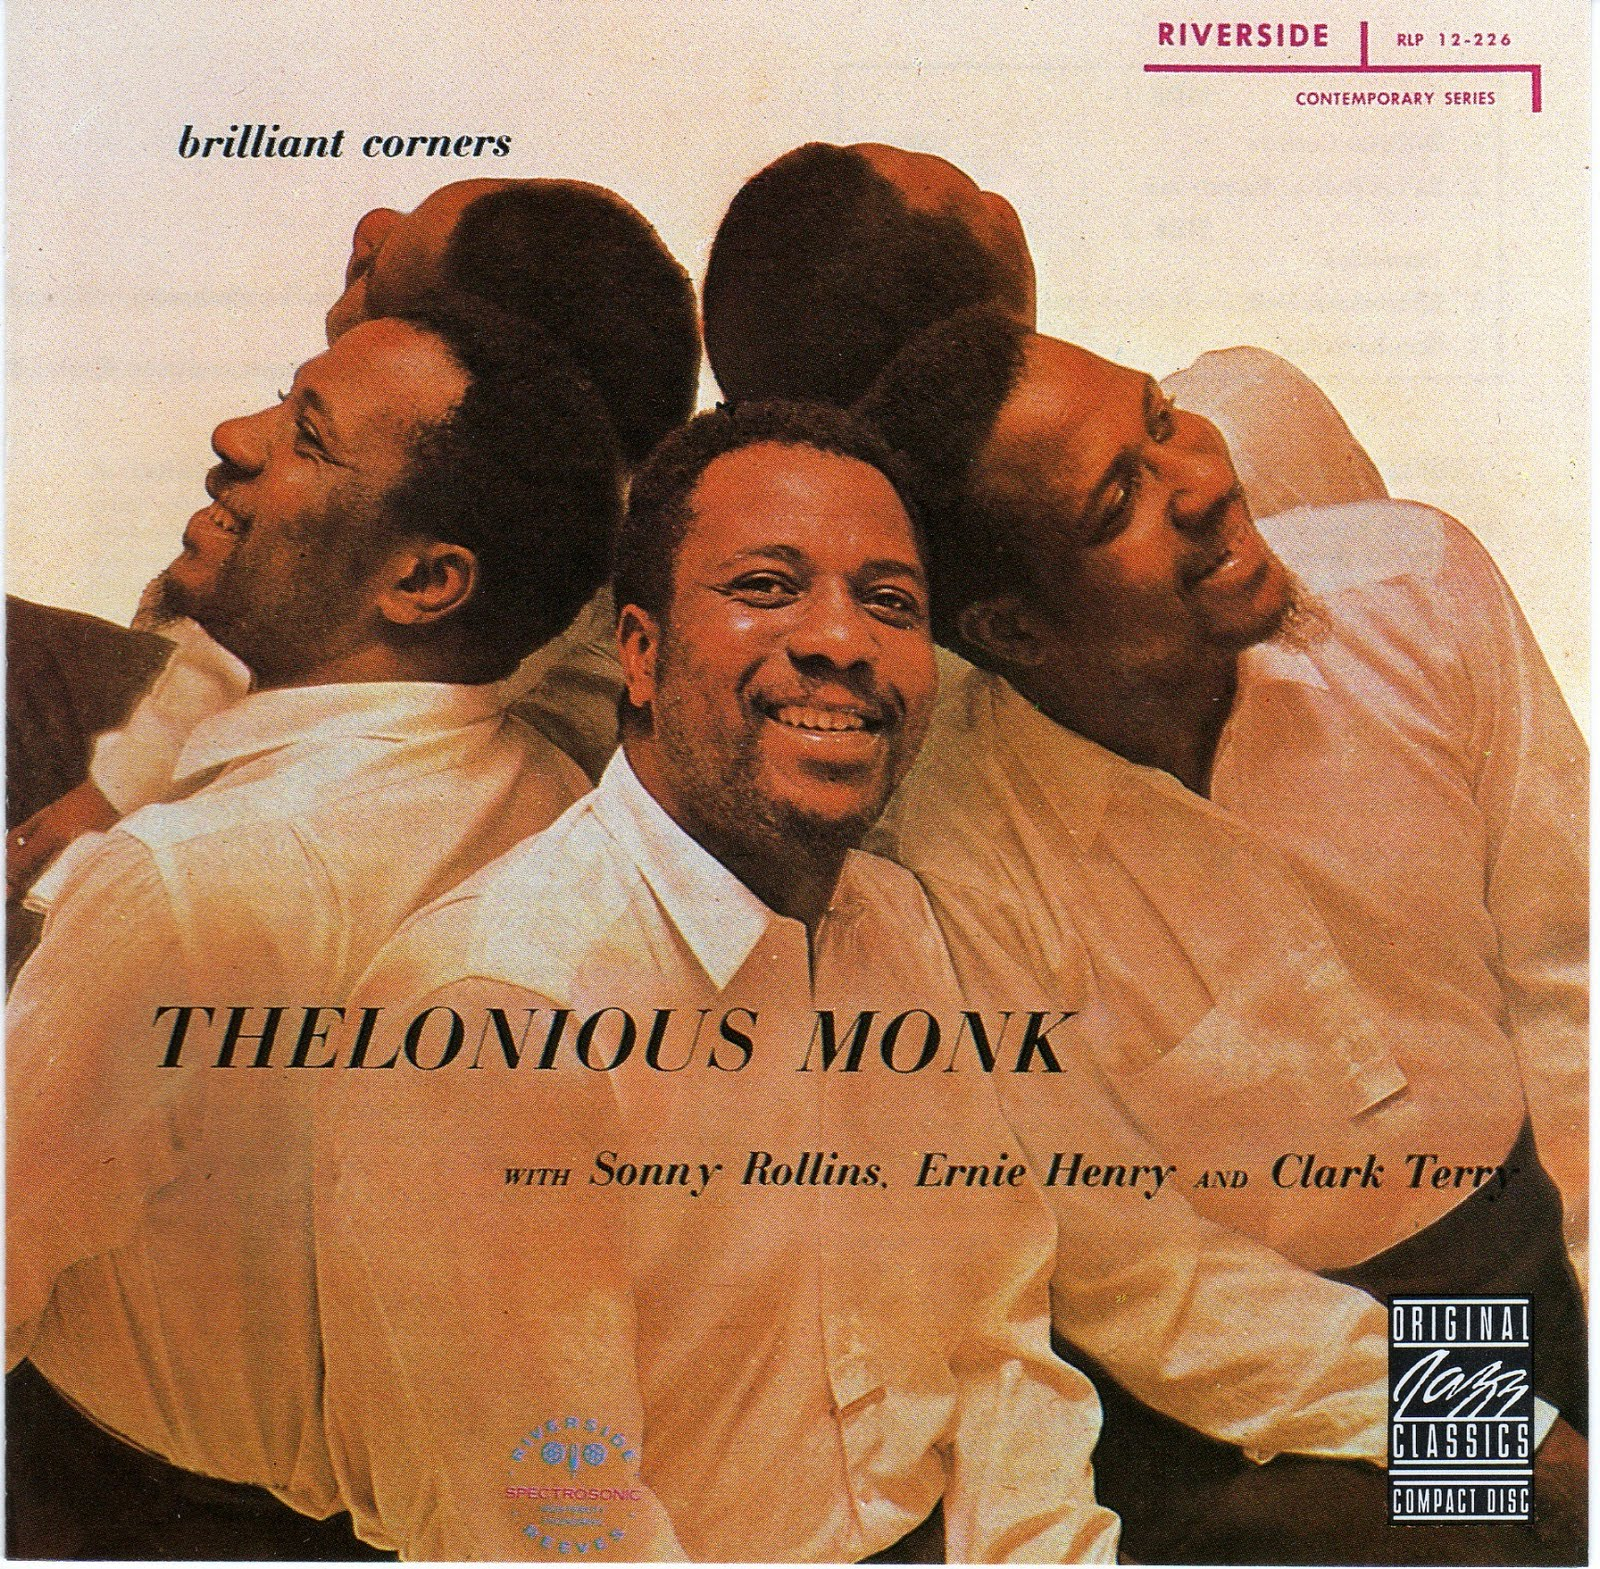 thelonious monk - brilliant corners (sleeve art)